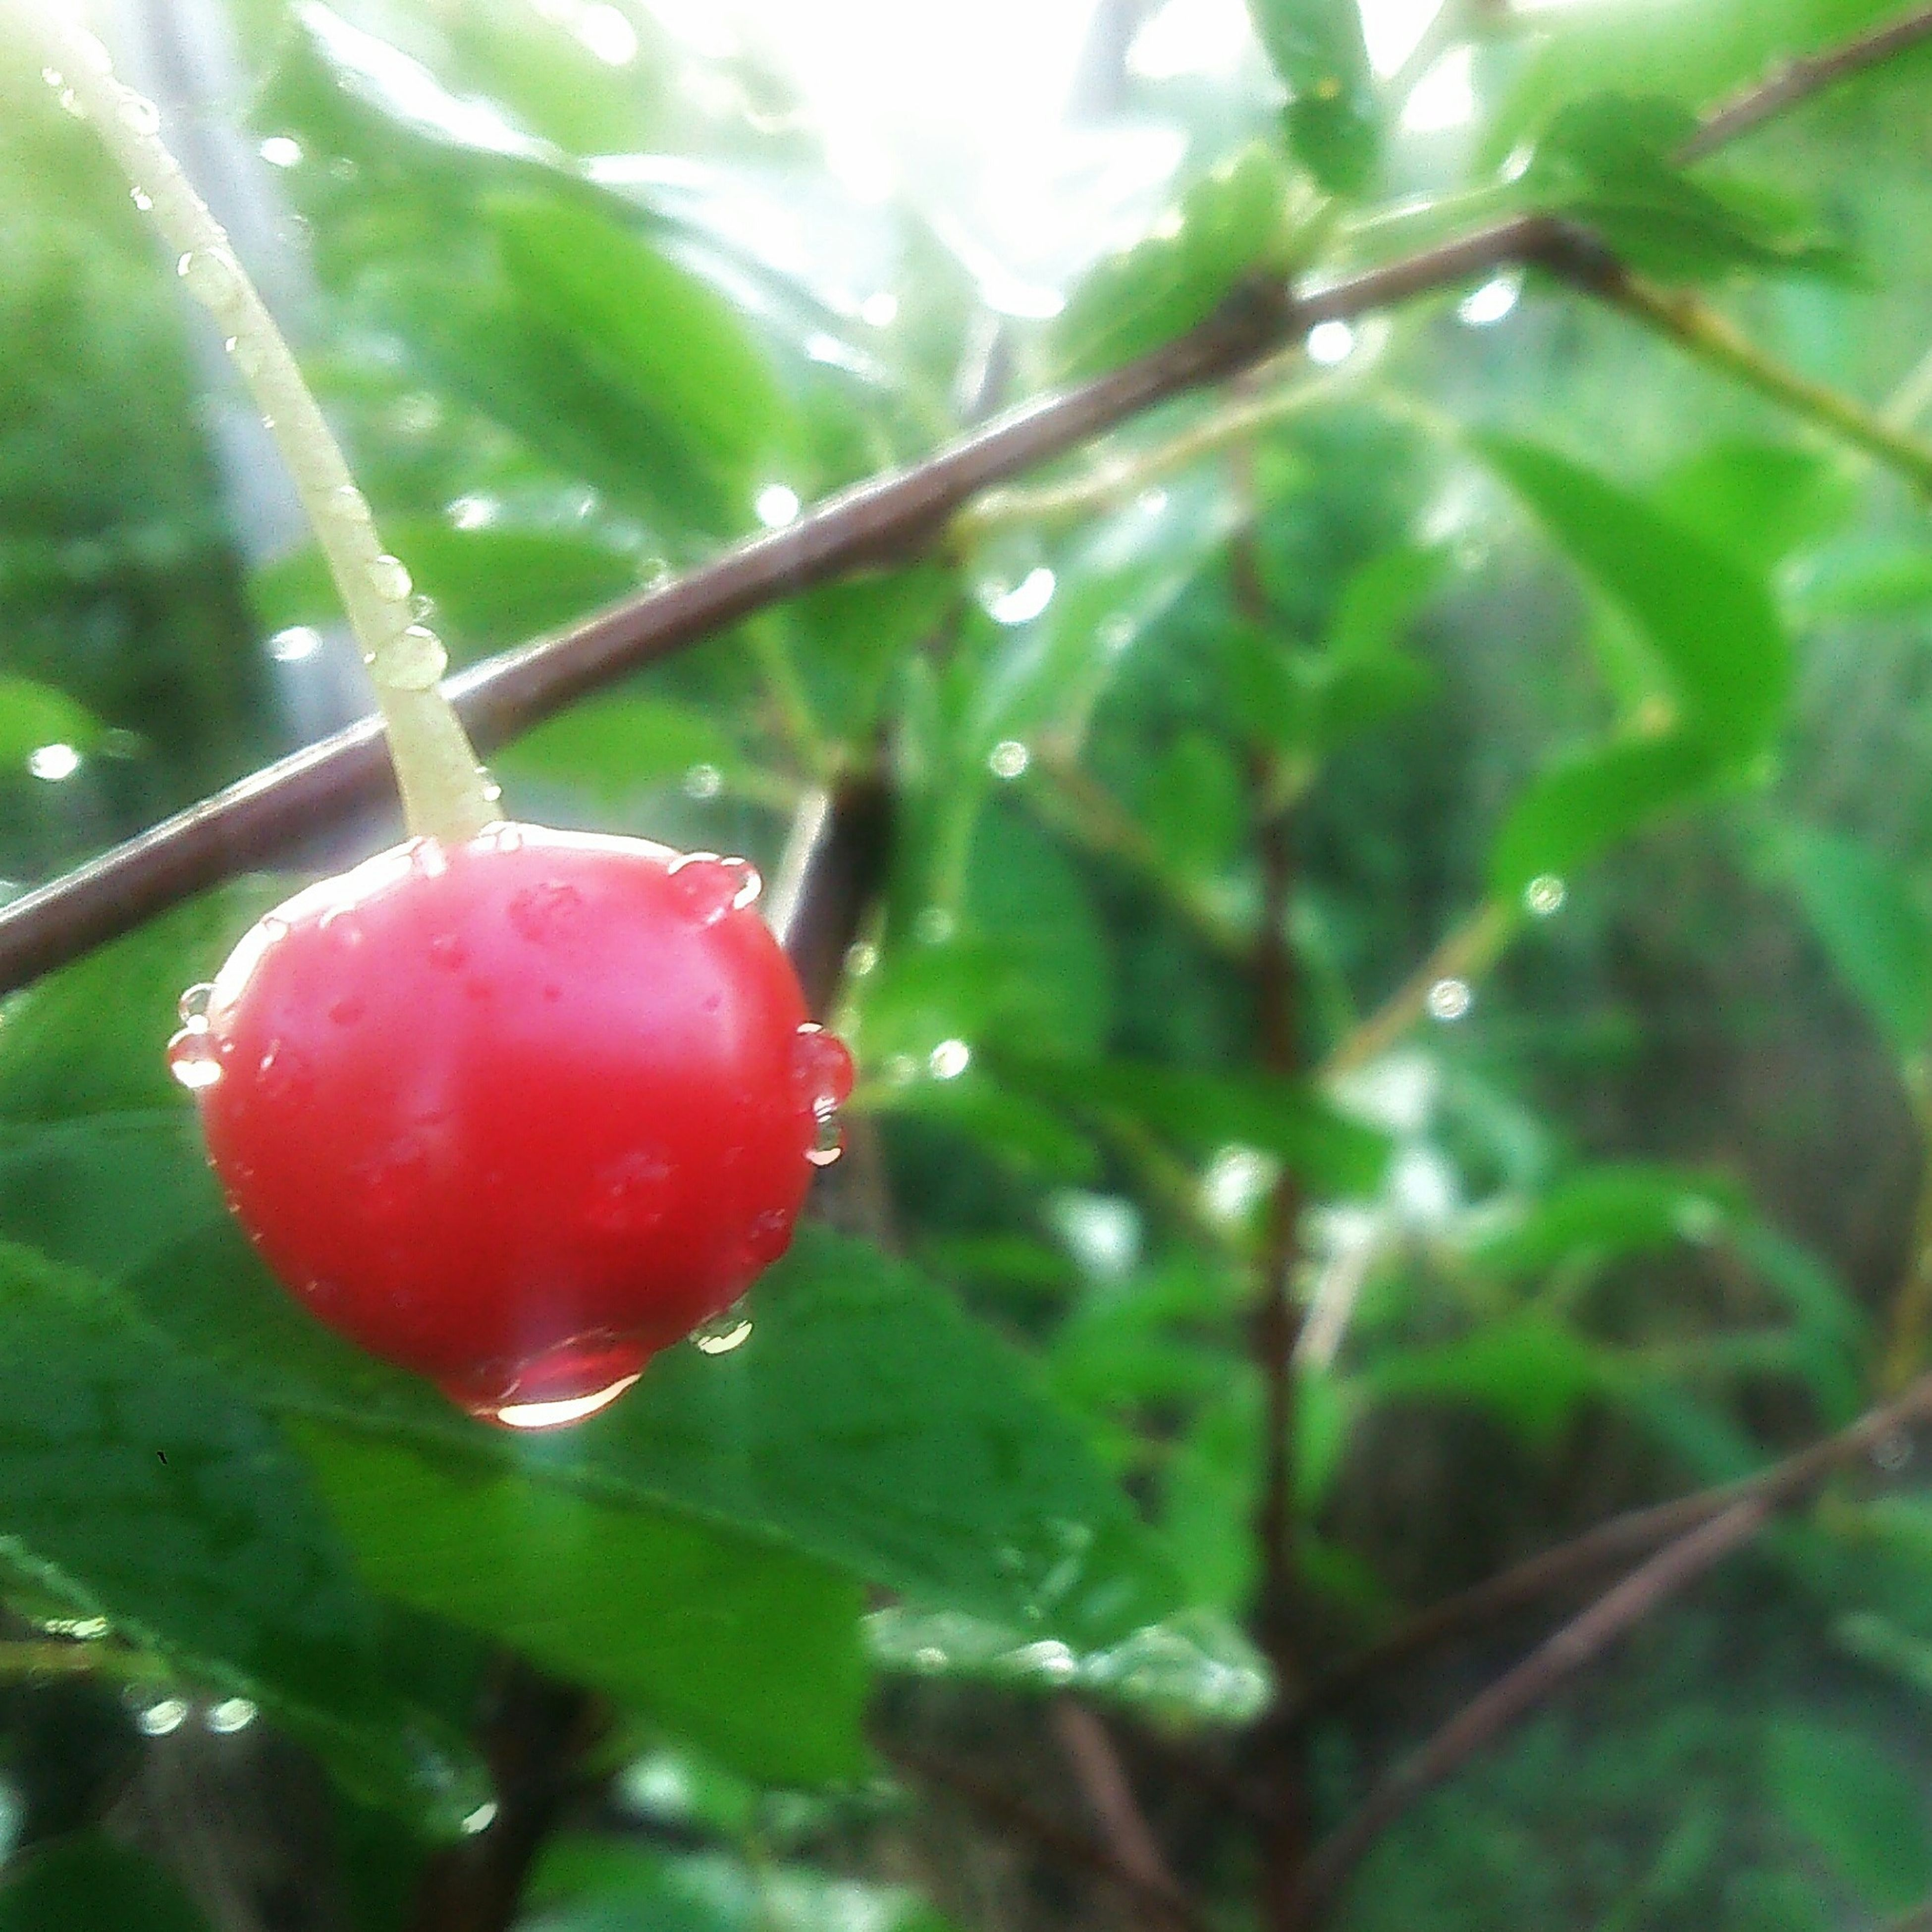 drop, fruit, freshness, red, close-up, water, leaf, wet, focus on foreground, growth, food and drink, nature, tree, green color, branch, dew, hanging, berry fruit, plant, food